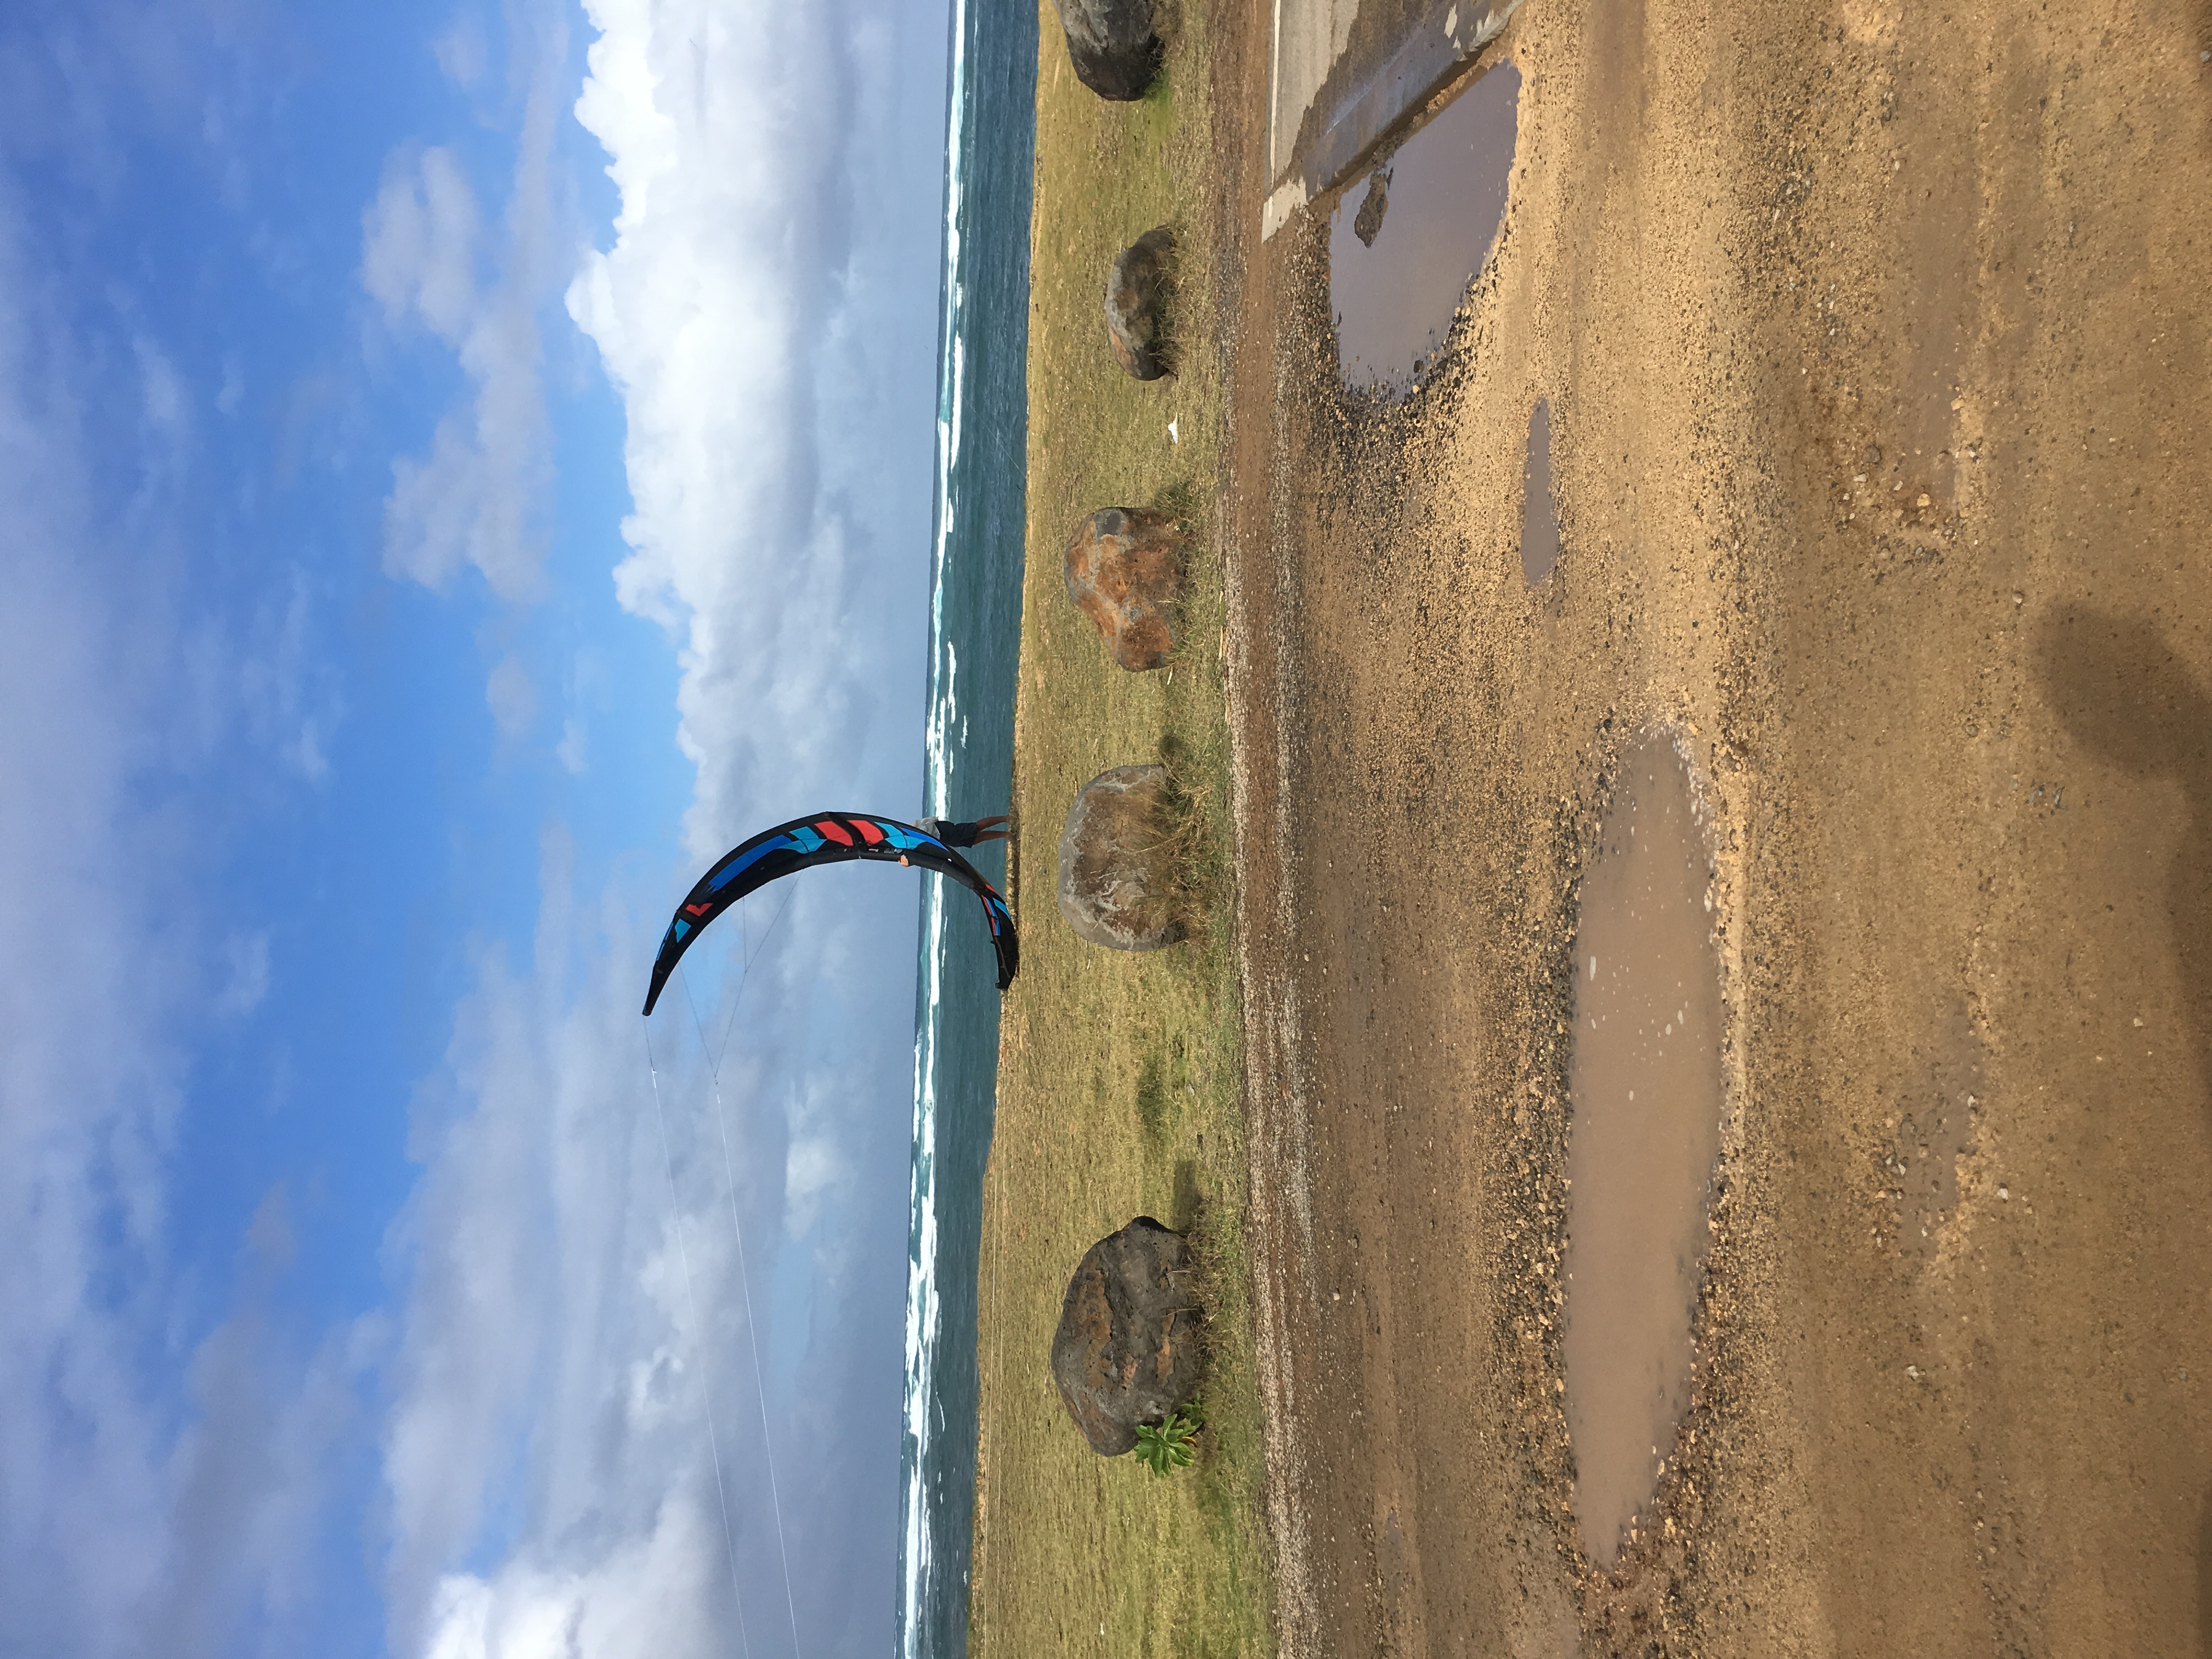 Kite Surfer's Haven